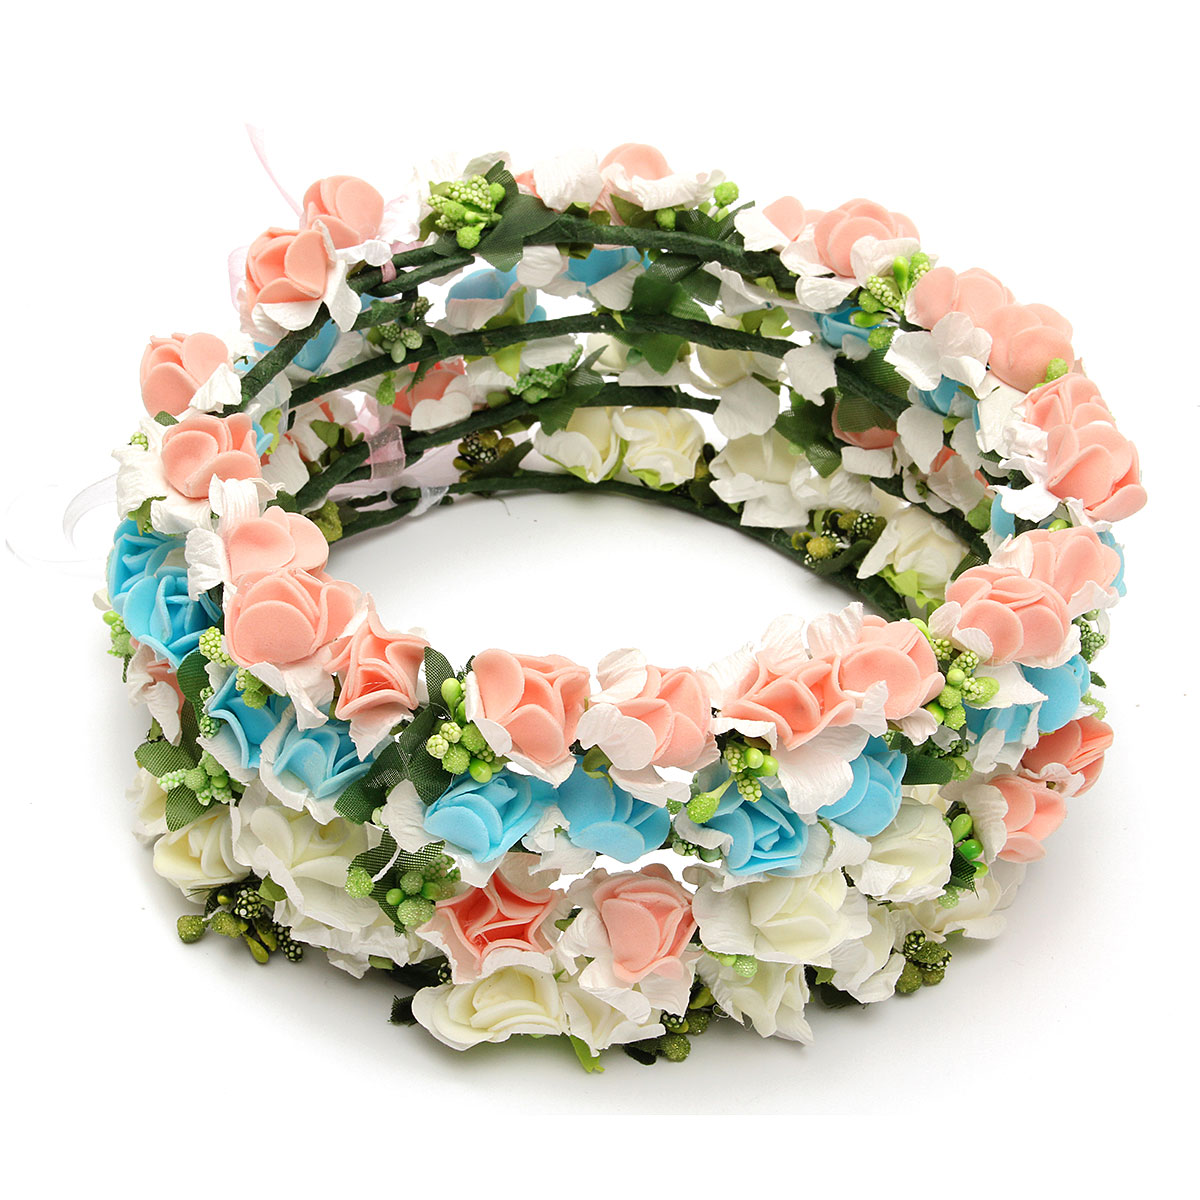 1Pcs Bride Girl Rose Flower Crown Headband Wedding Prom Beach Floral Garland Hairband